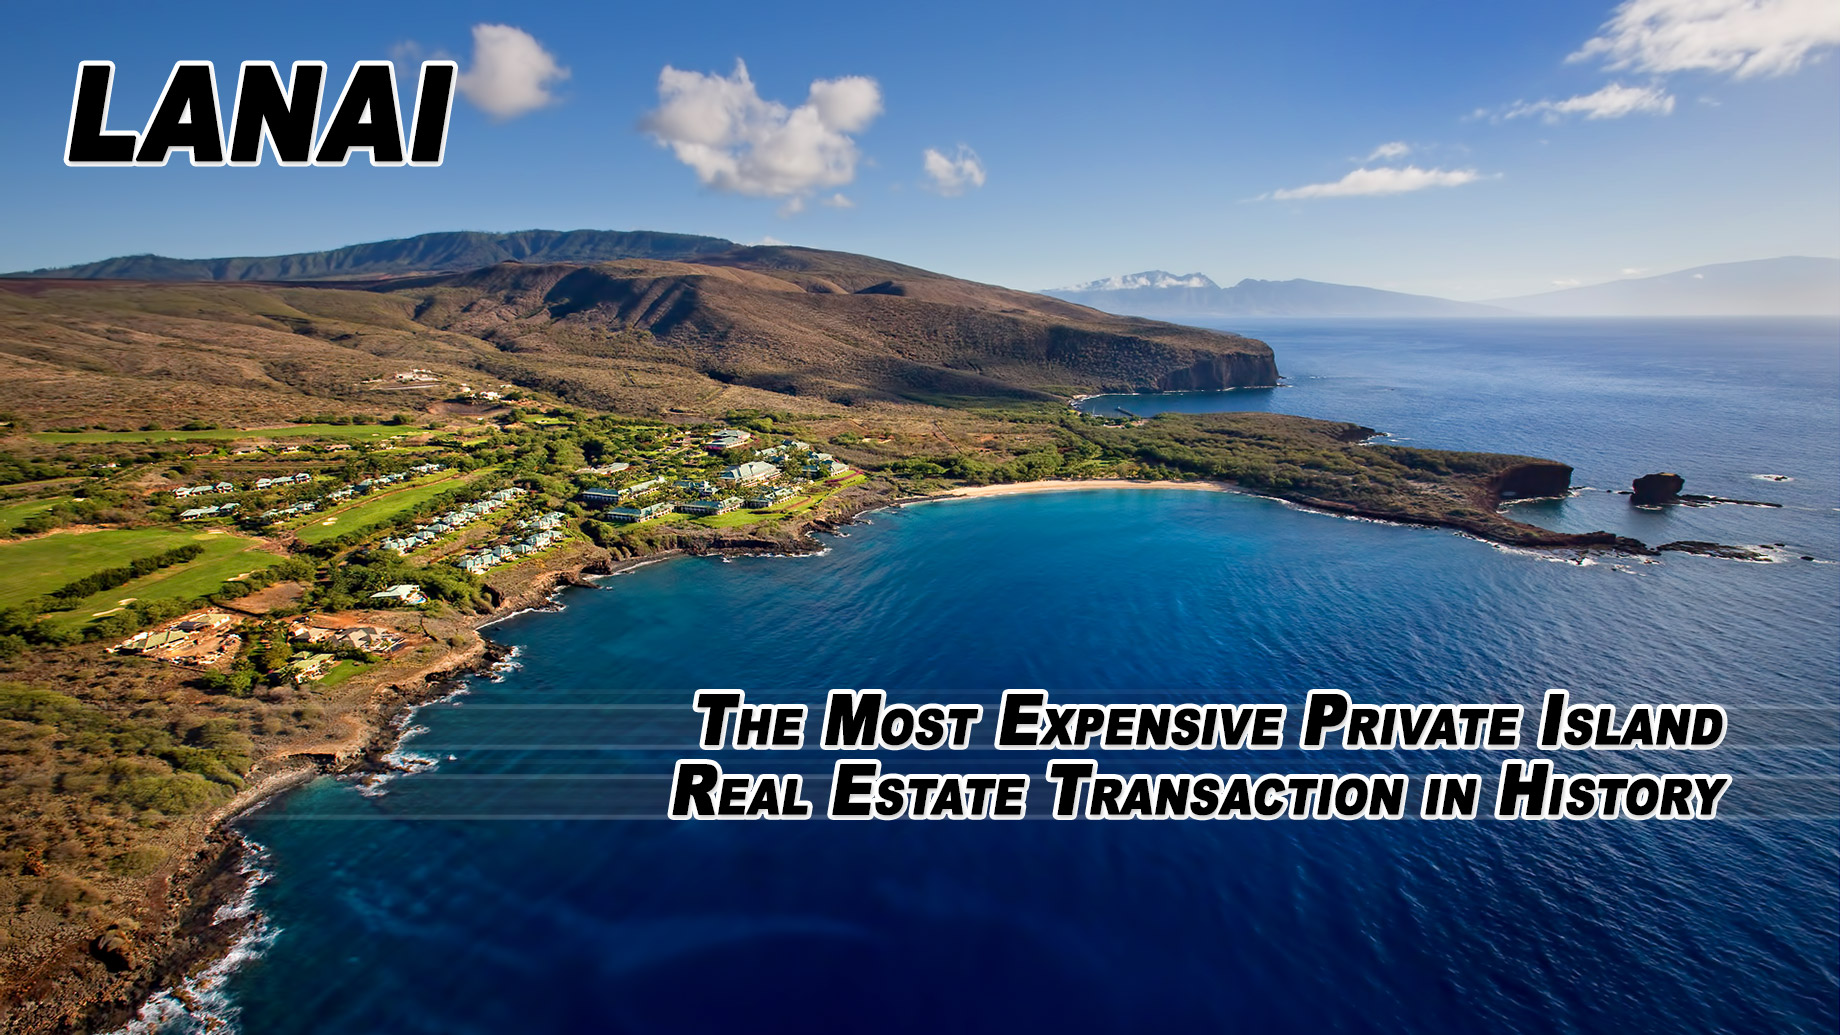 Lanai – The Most Expensive Private Island Real Estate Transaction in History